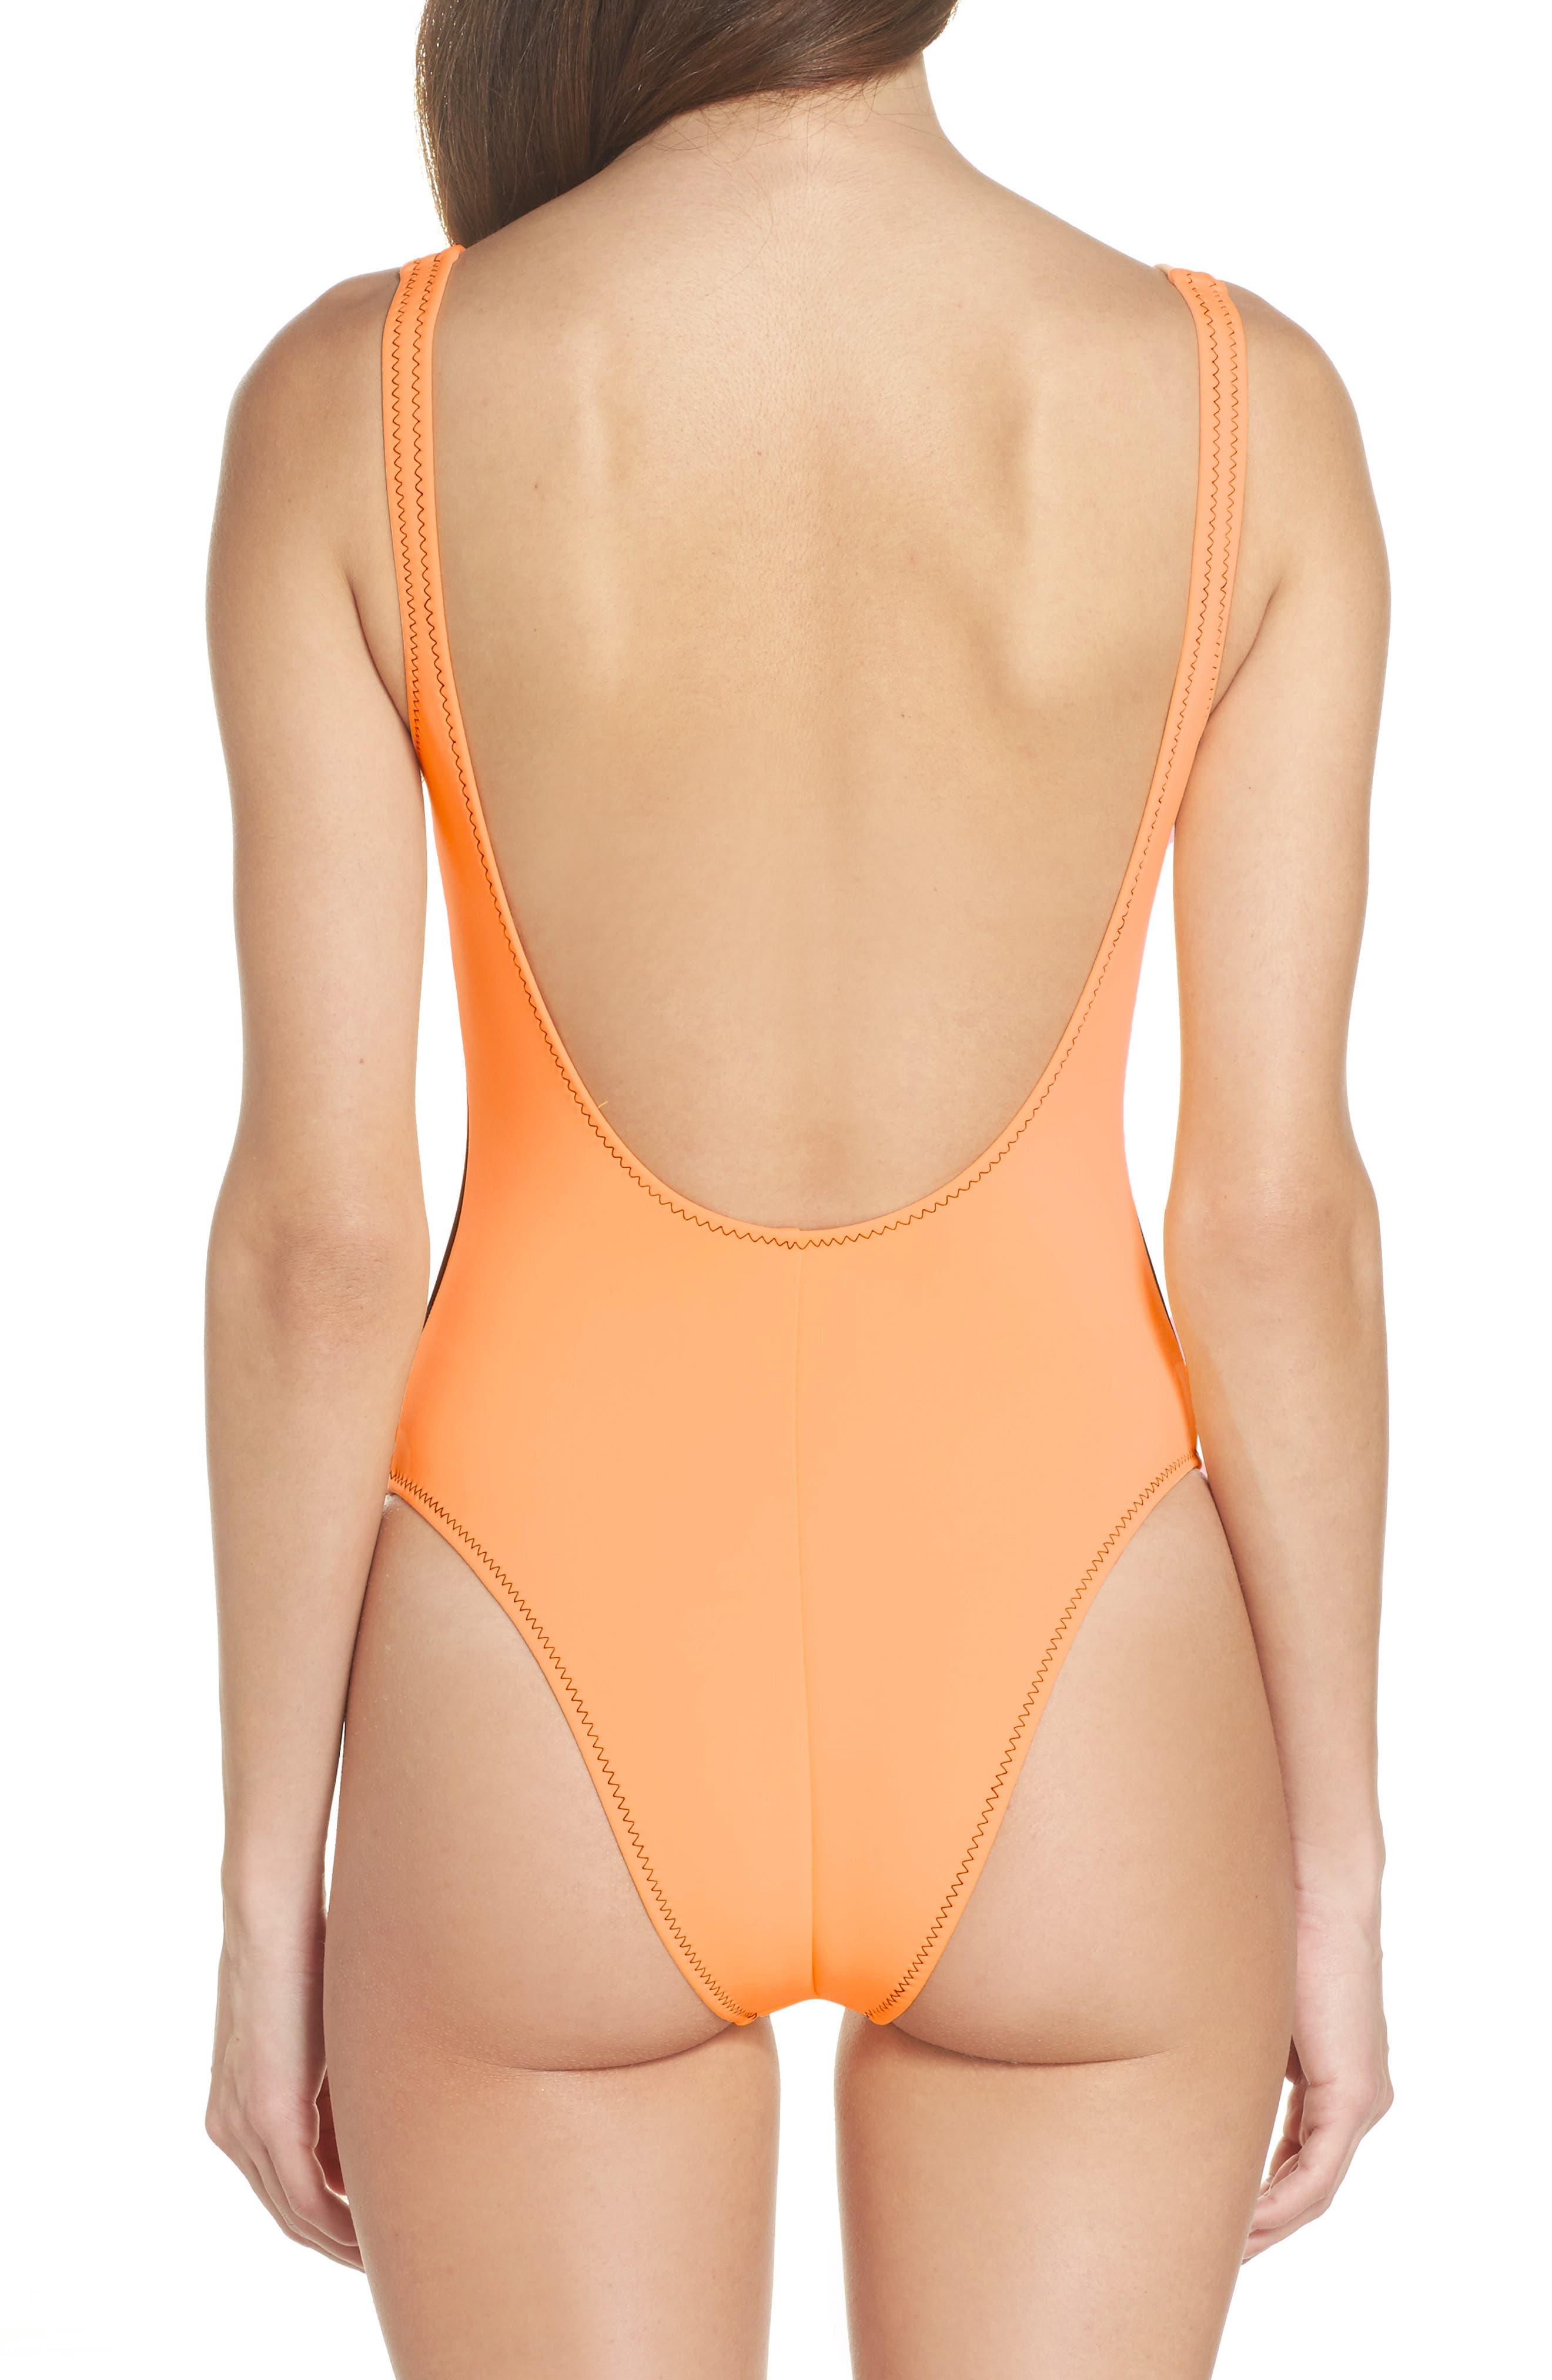 Time After Time One-Piece Swimsuit,                             Alternate thumbnail 2, color,                             816